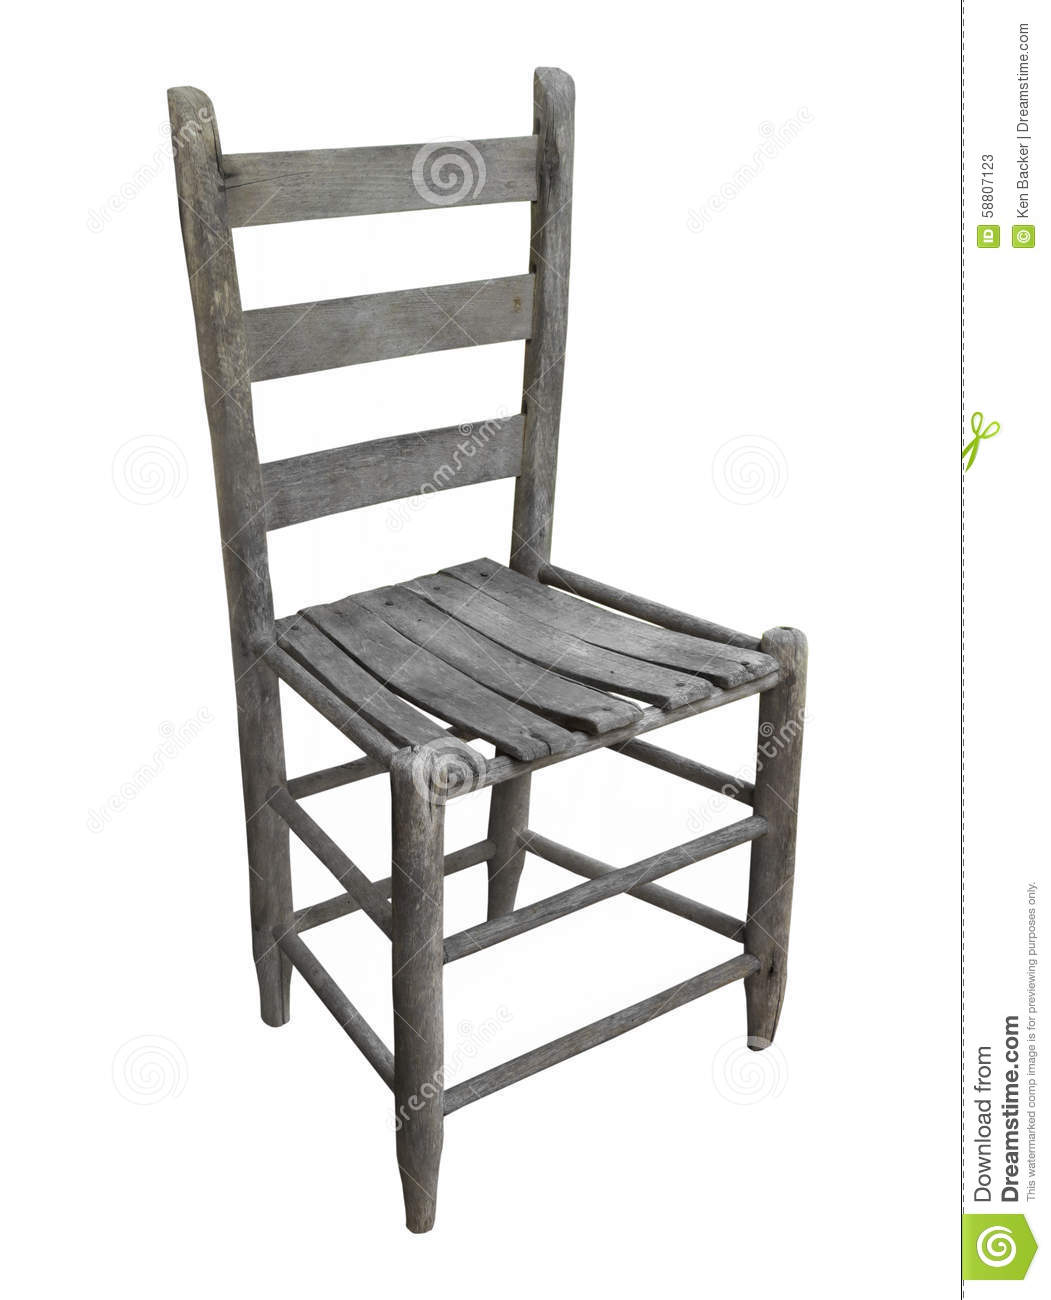 Old, worn, and unpainted rustic wooden ladder back chair. Isolated on ...